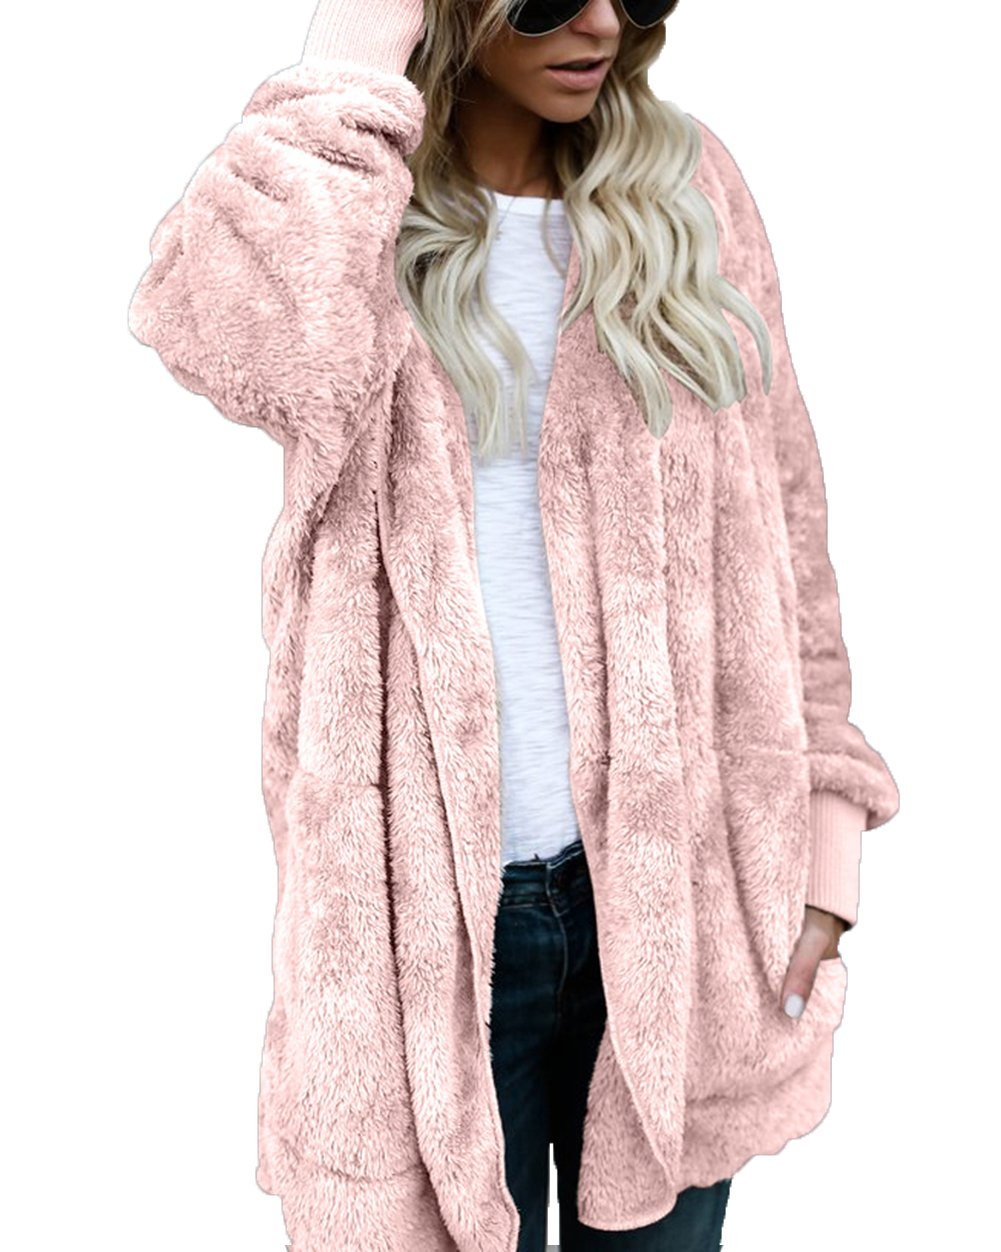 FOUNDO Women's Winter Fleece Cardigan Open Front Hooded Sherpa Plush Jacket Coat Pink M